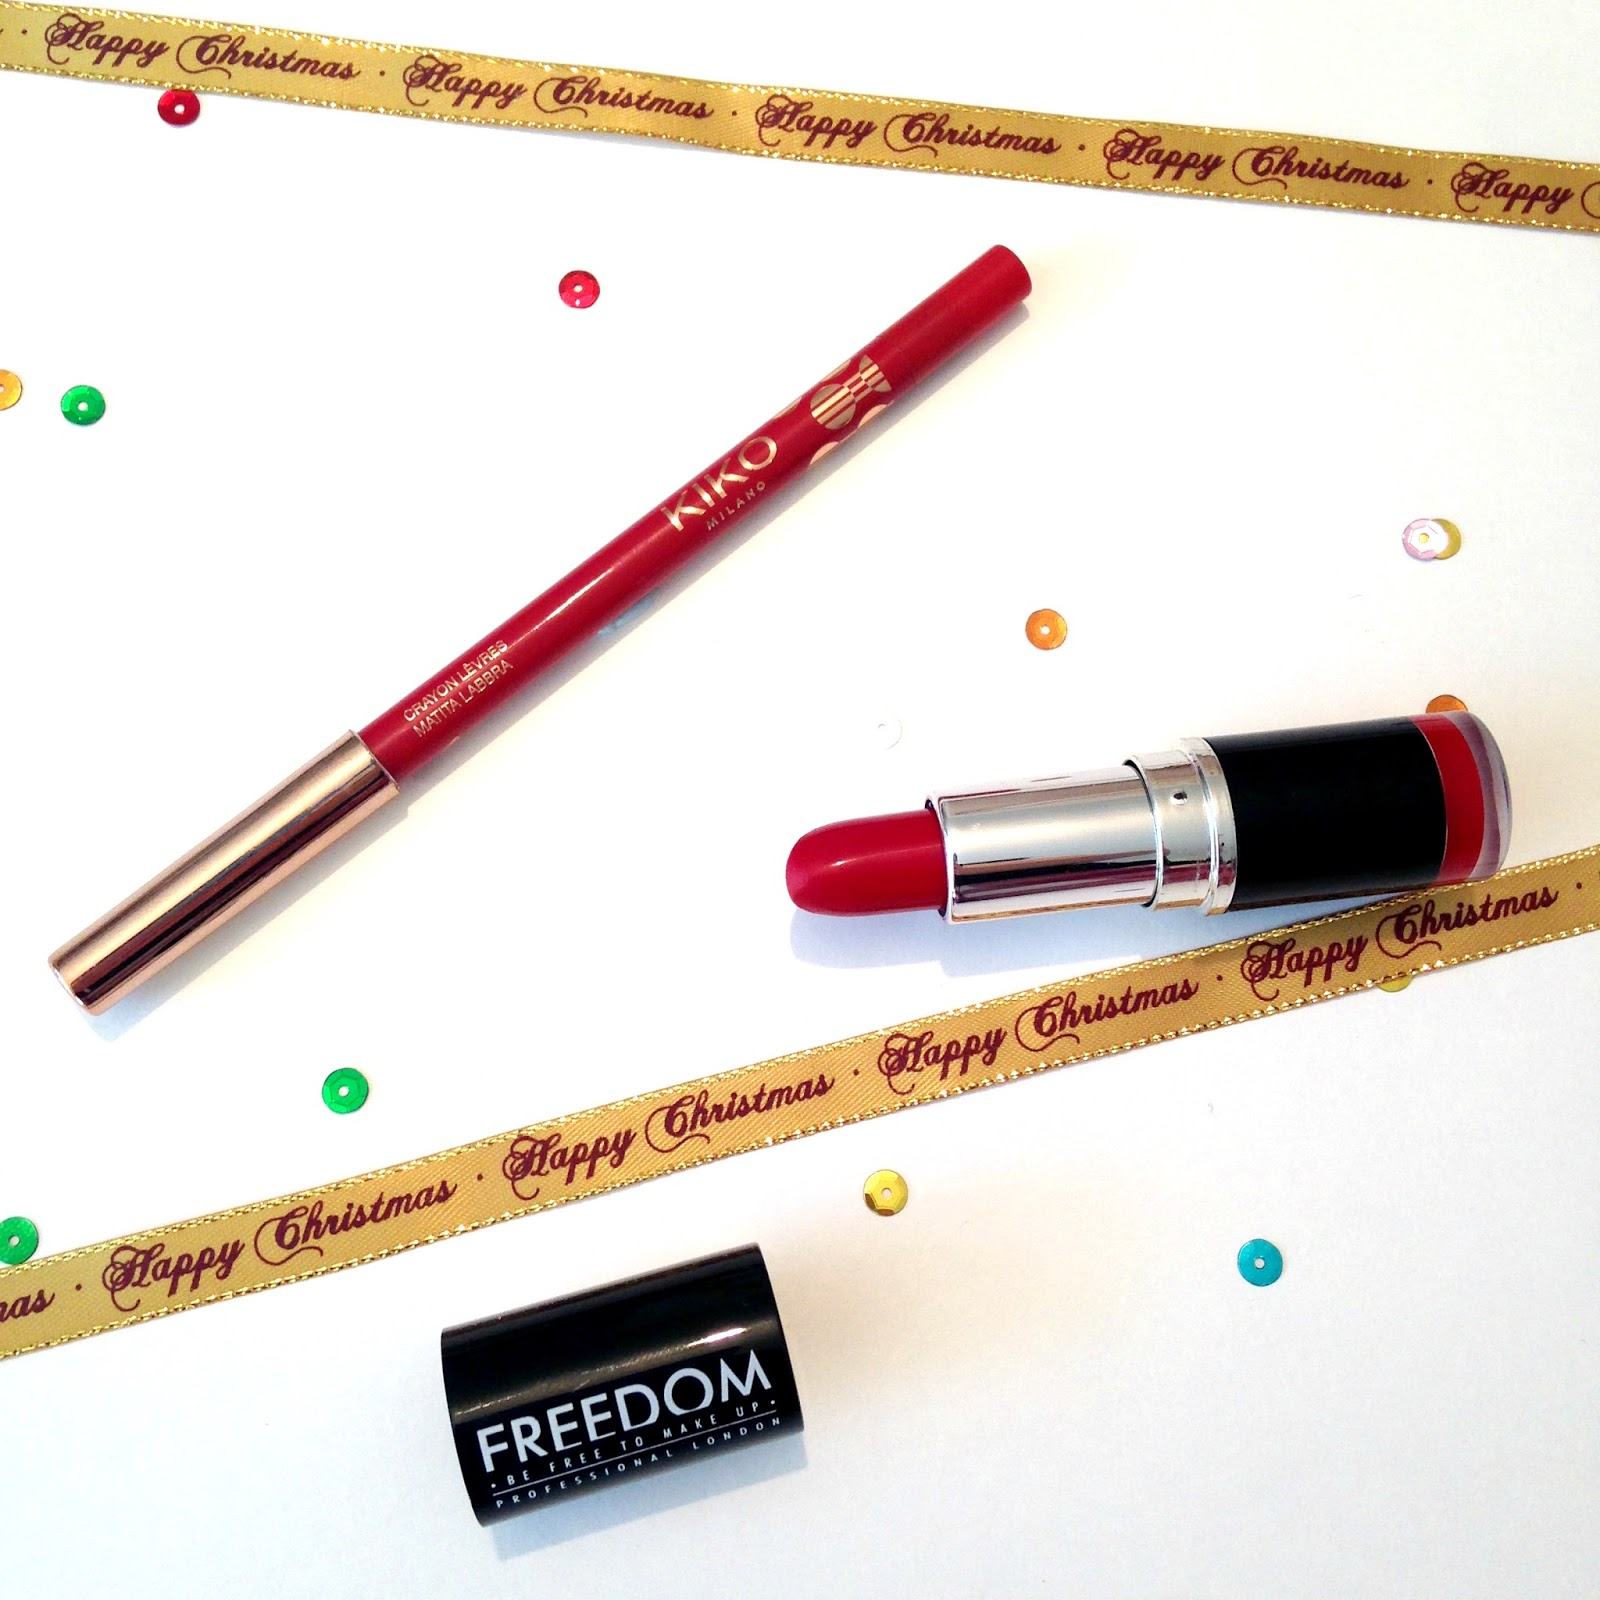 Freedom Pro Lipstick in Red Wine